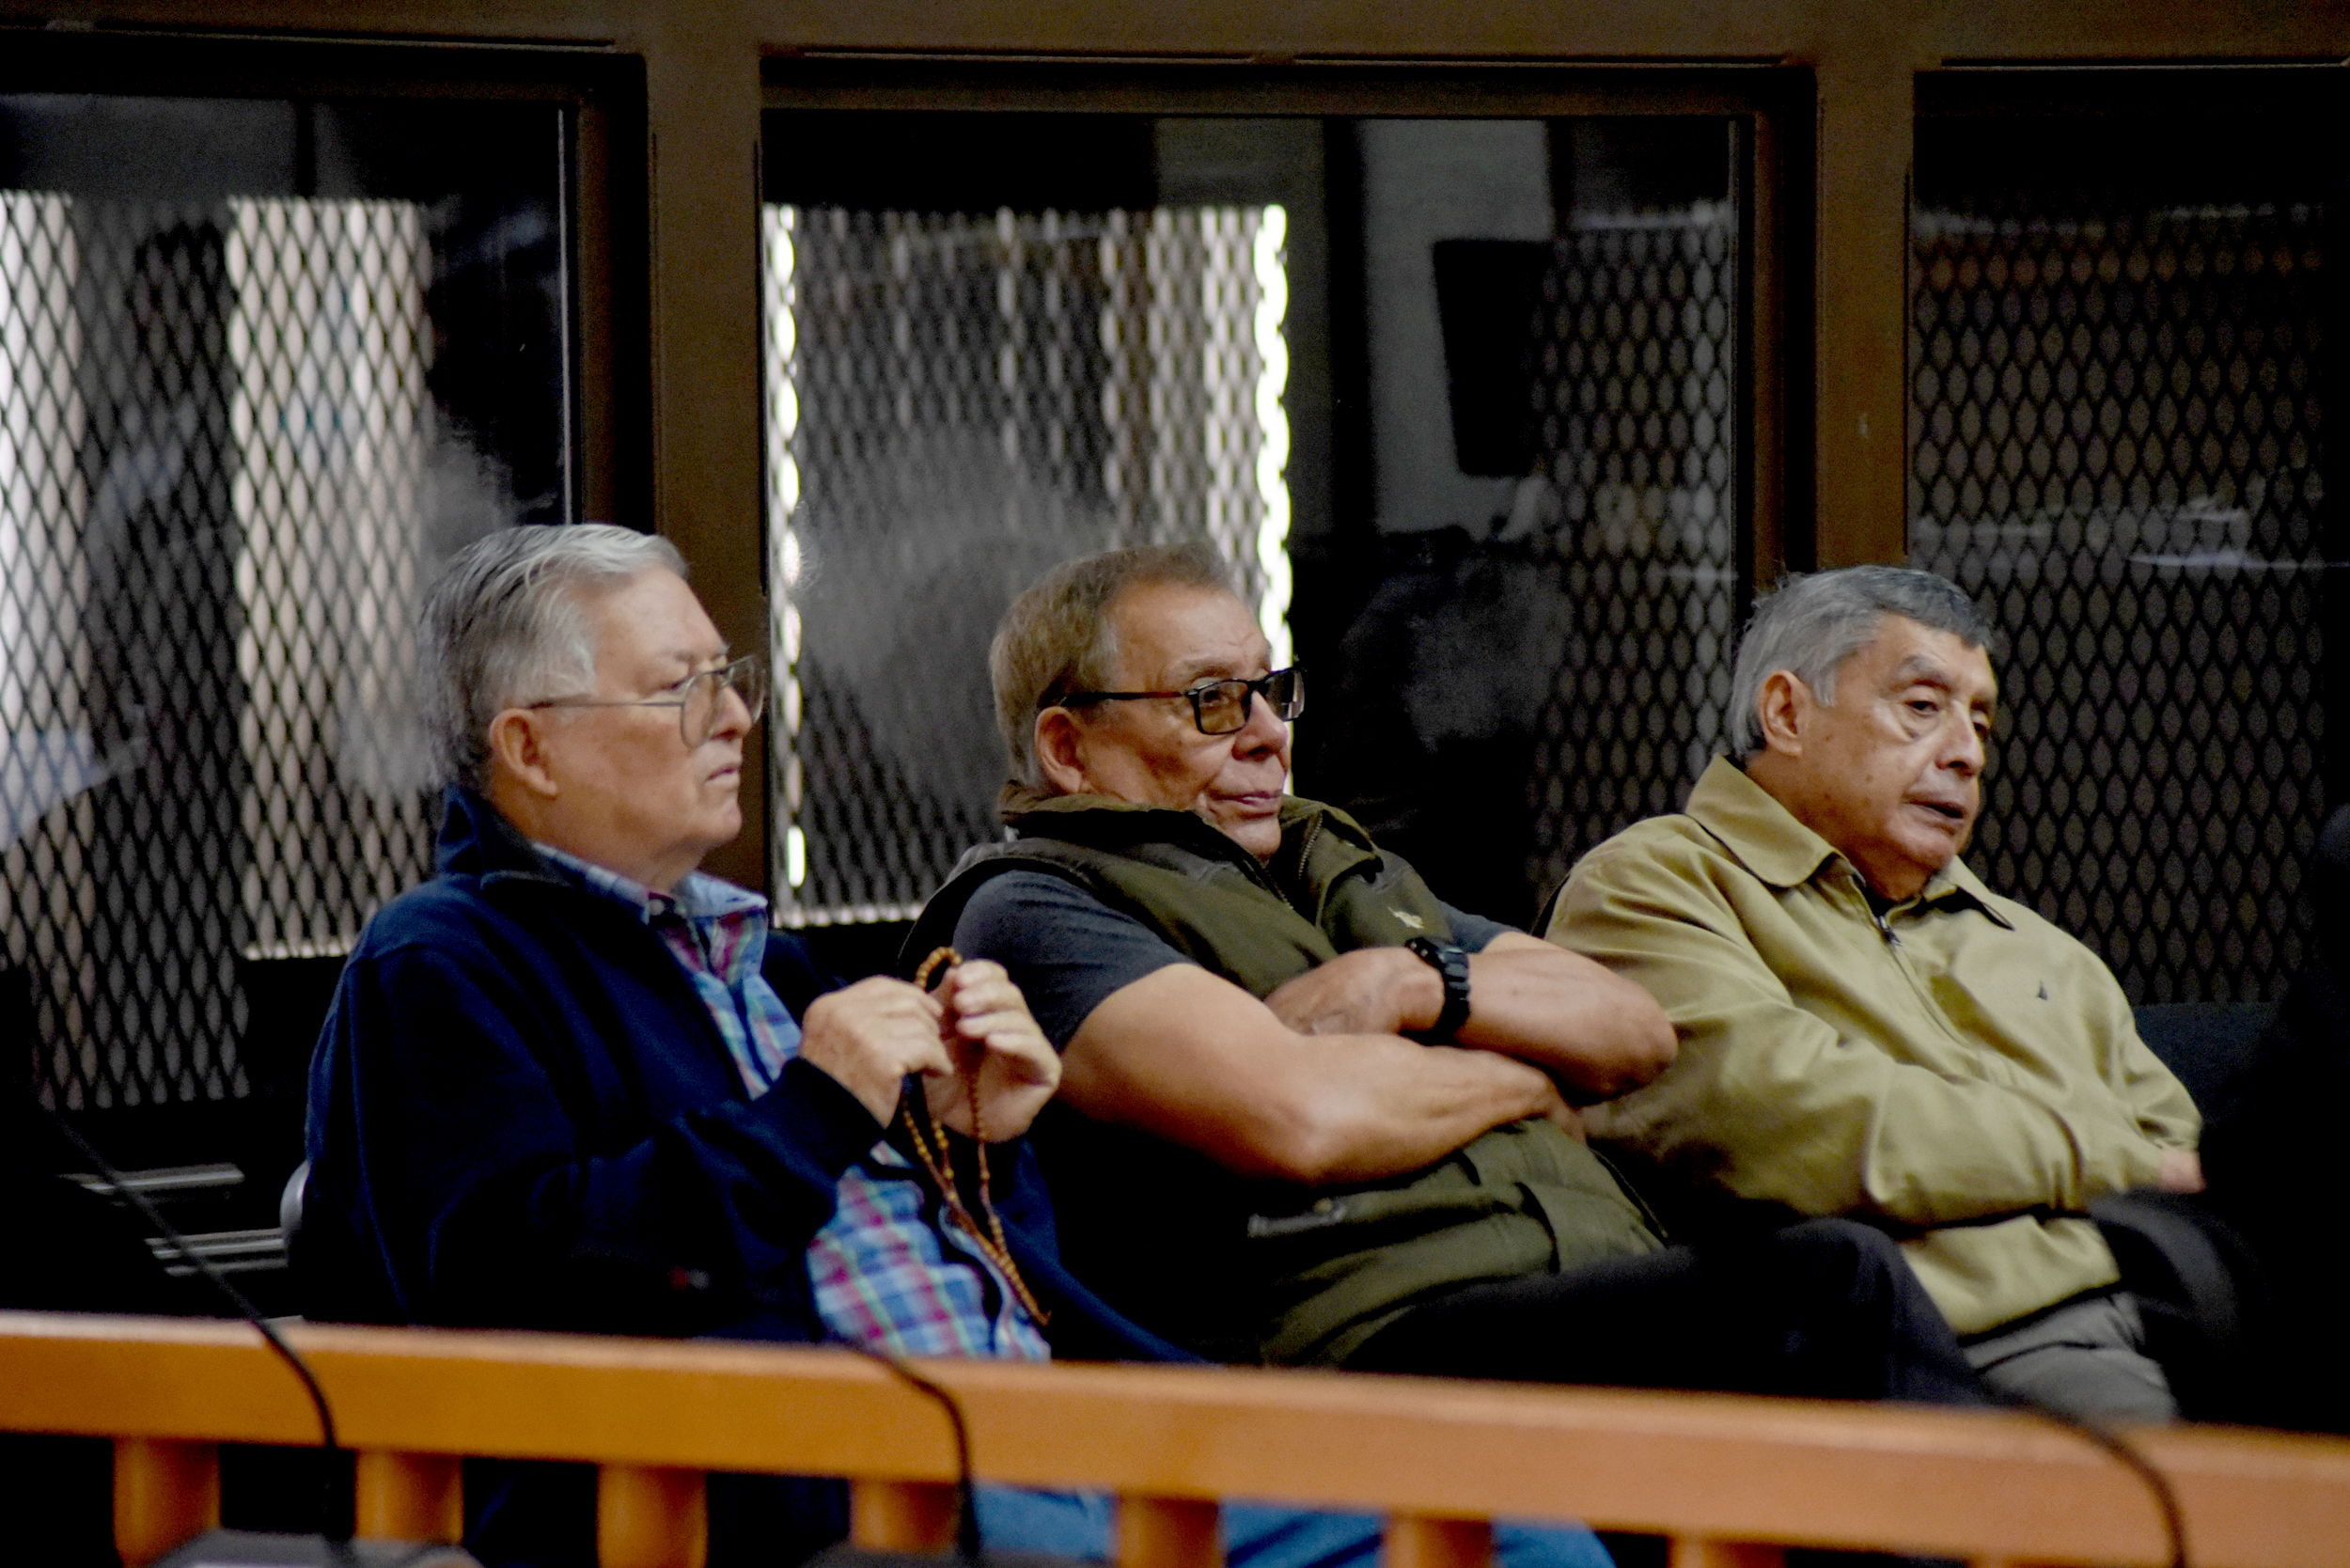 Two former generals in Guatemala will stand trial on genocide, crimes against humanity